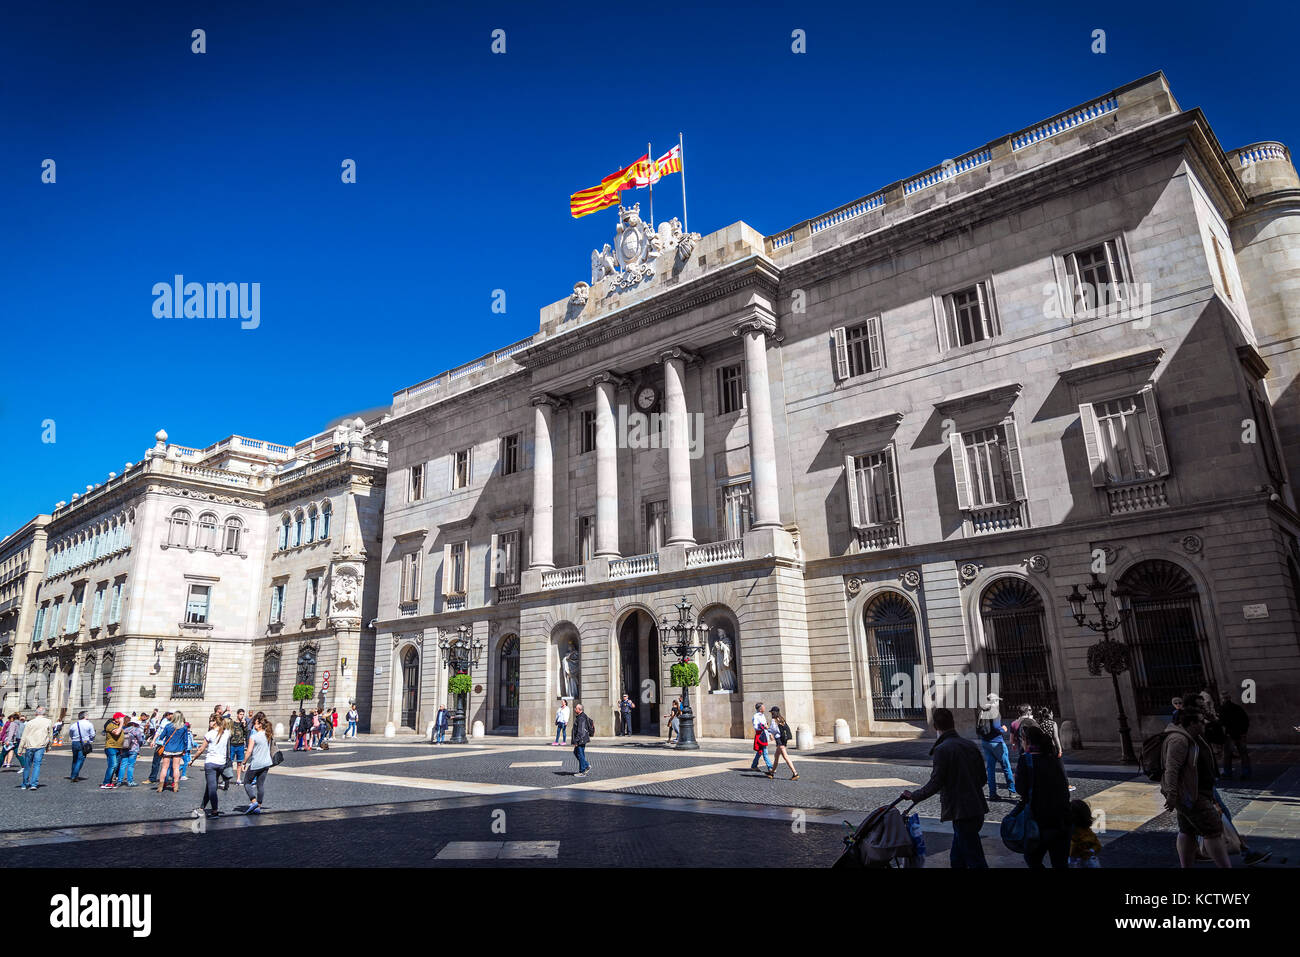 Generalitat Palace building of the Catalan government at Plaza de Sant Jaume barcelona spain - Stock Image